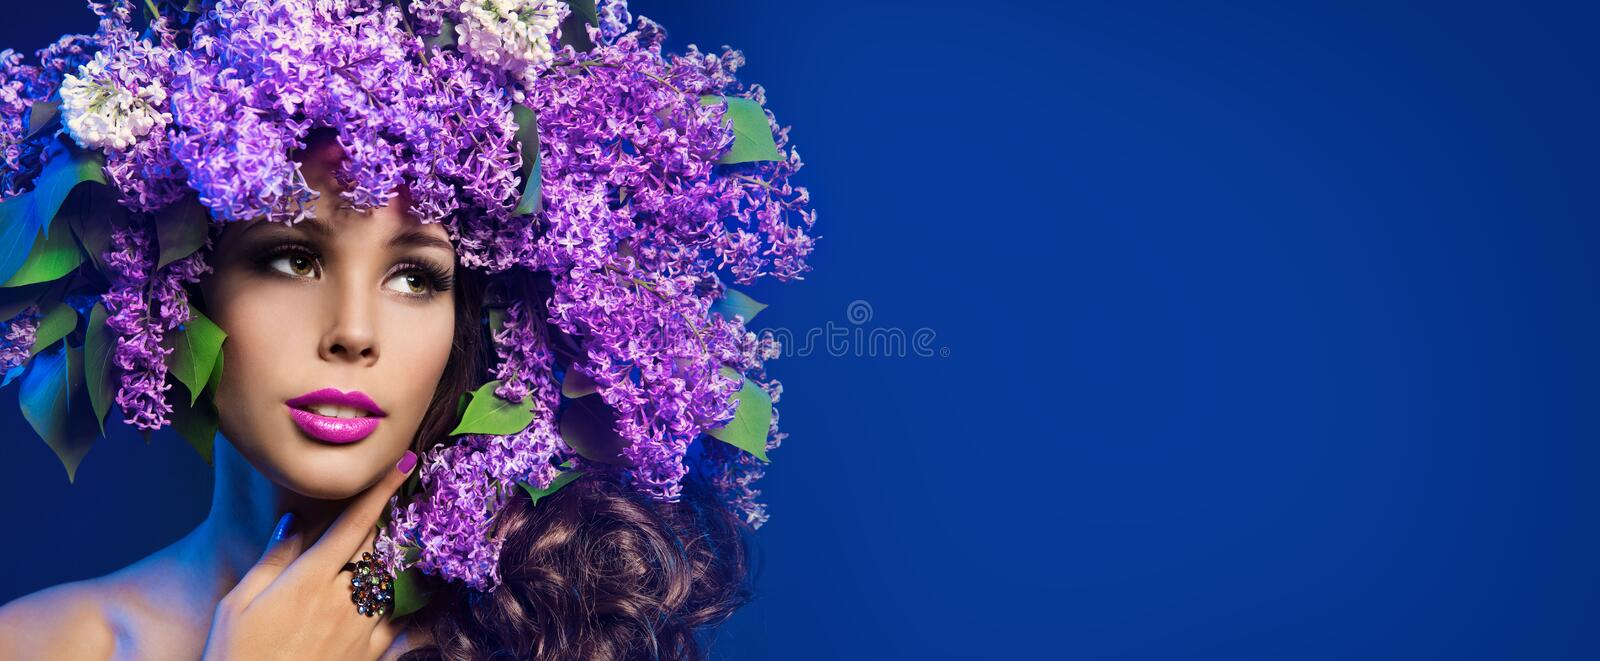 Woman Lilac Flower Wreath Hat, Beautiful Fashion Models with Purple Flowers in Hairstyle on Blue royalty free stock image